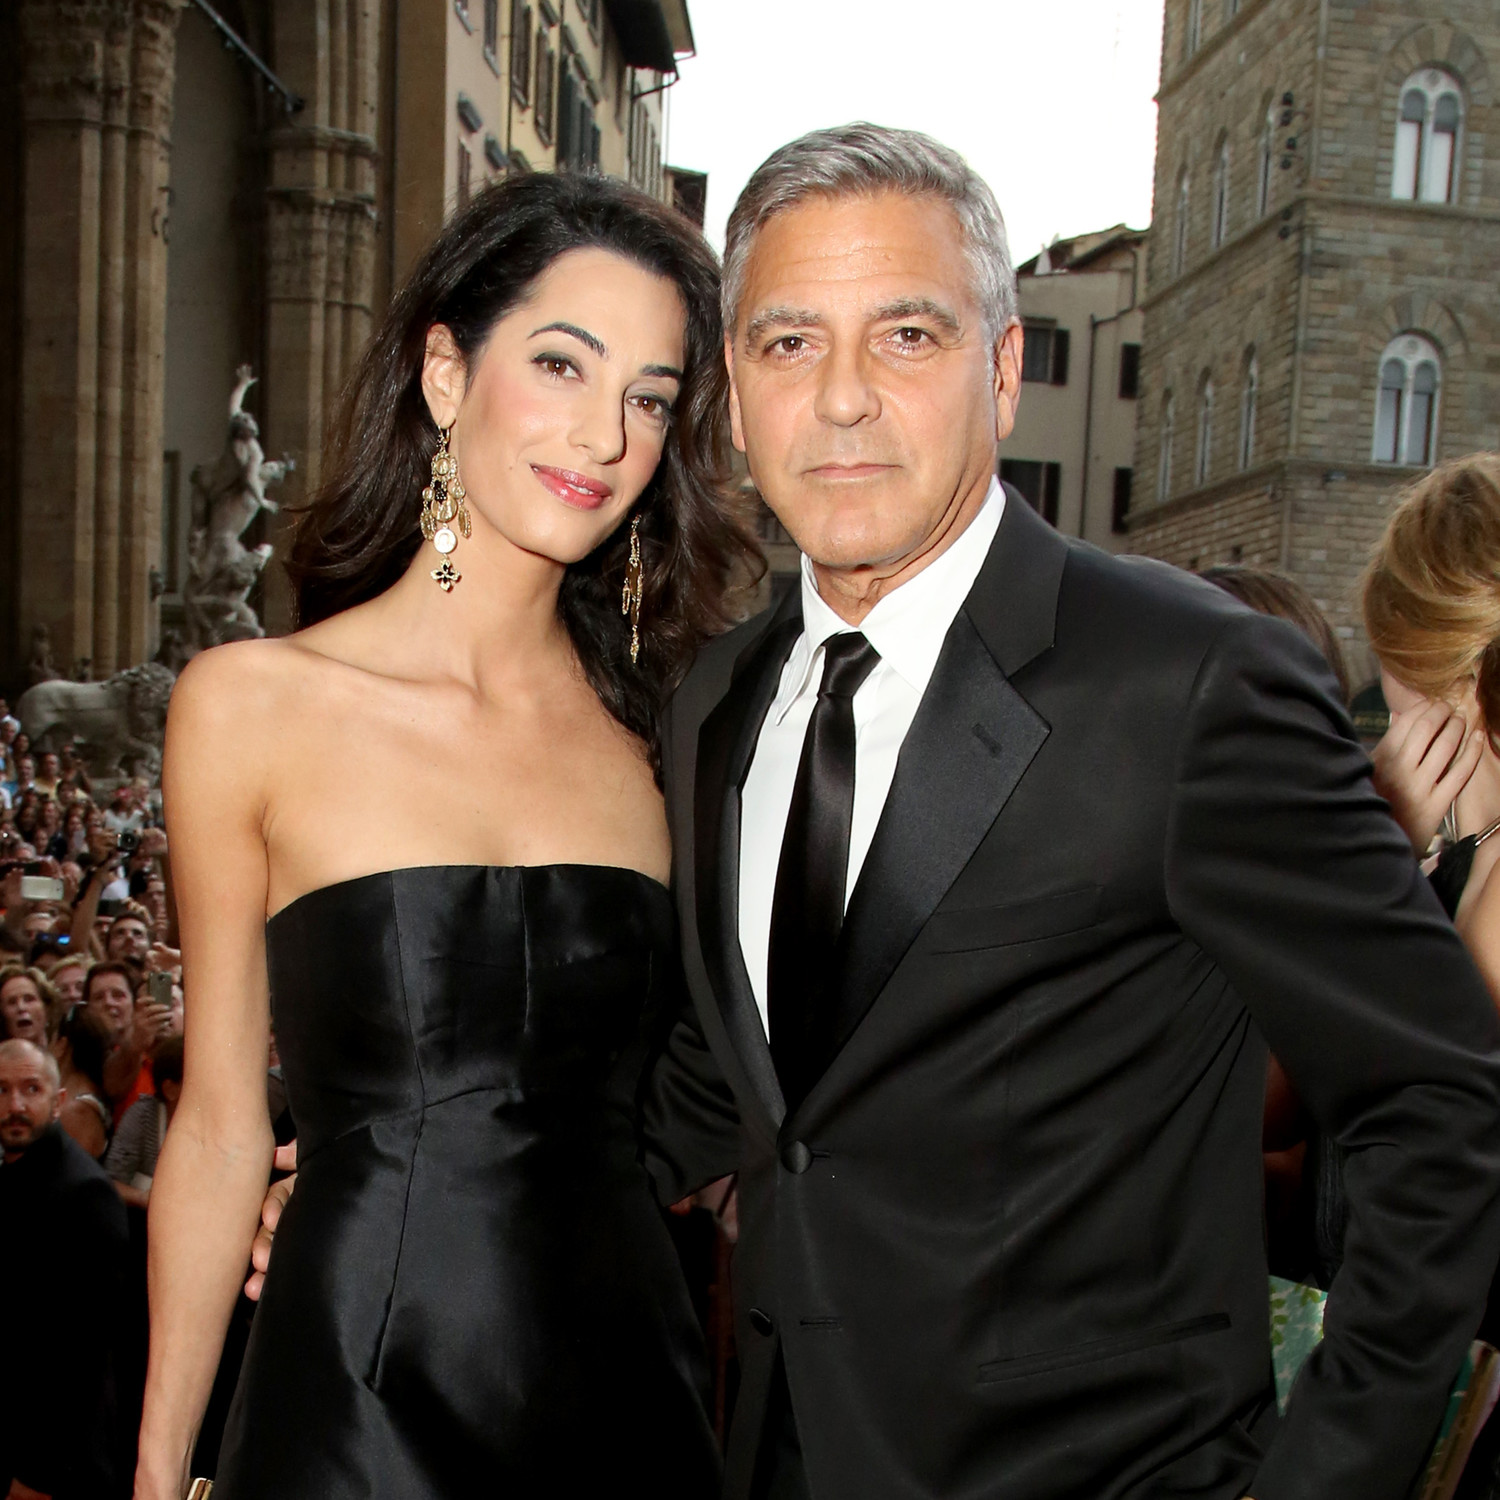 23 Details We'd Like To See At George Clooney And Amal